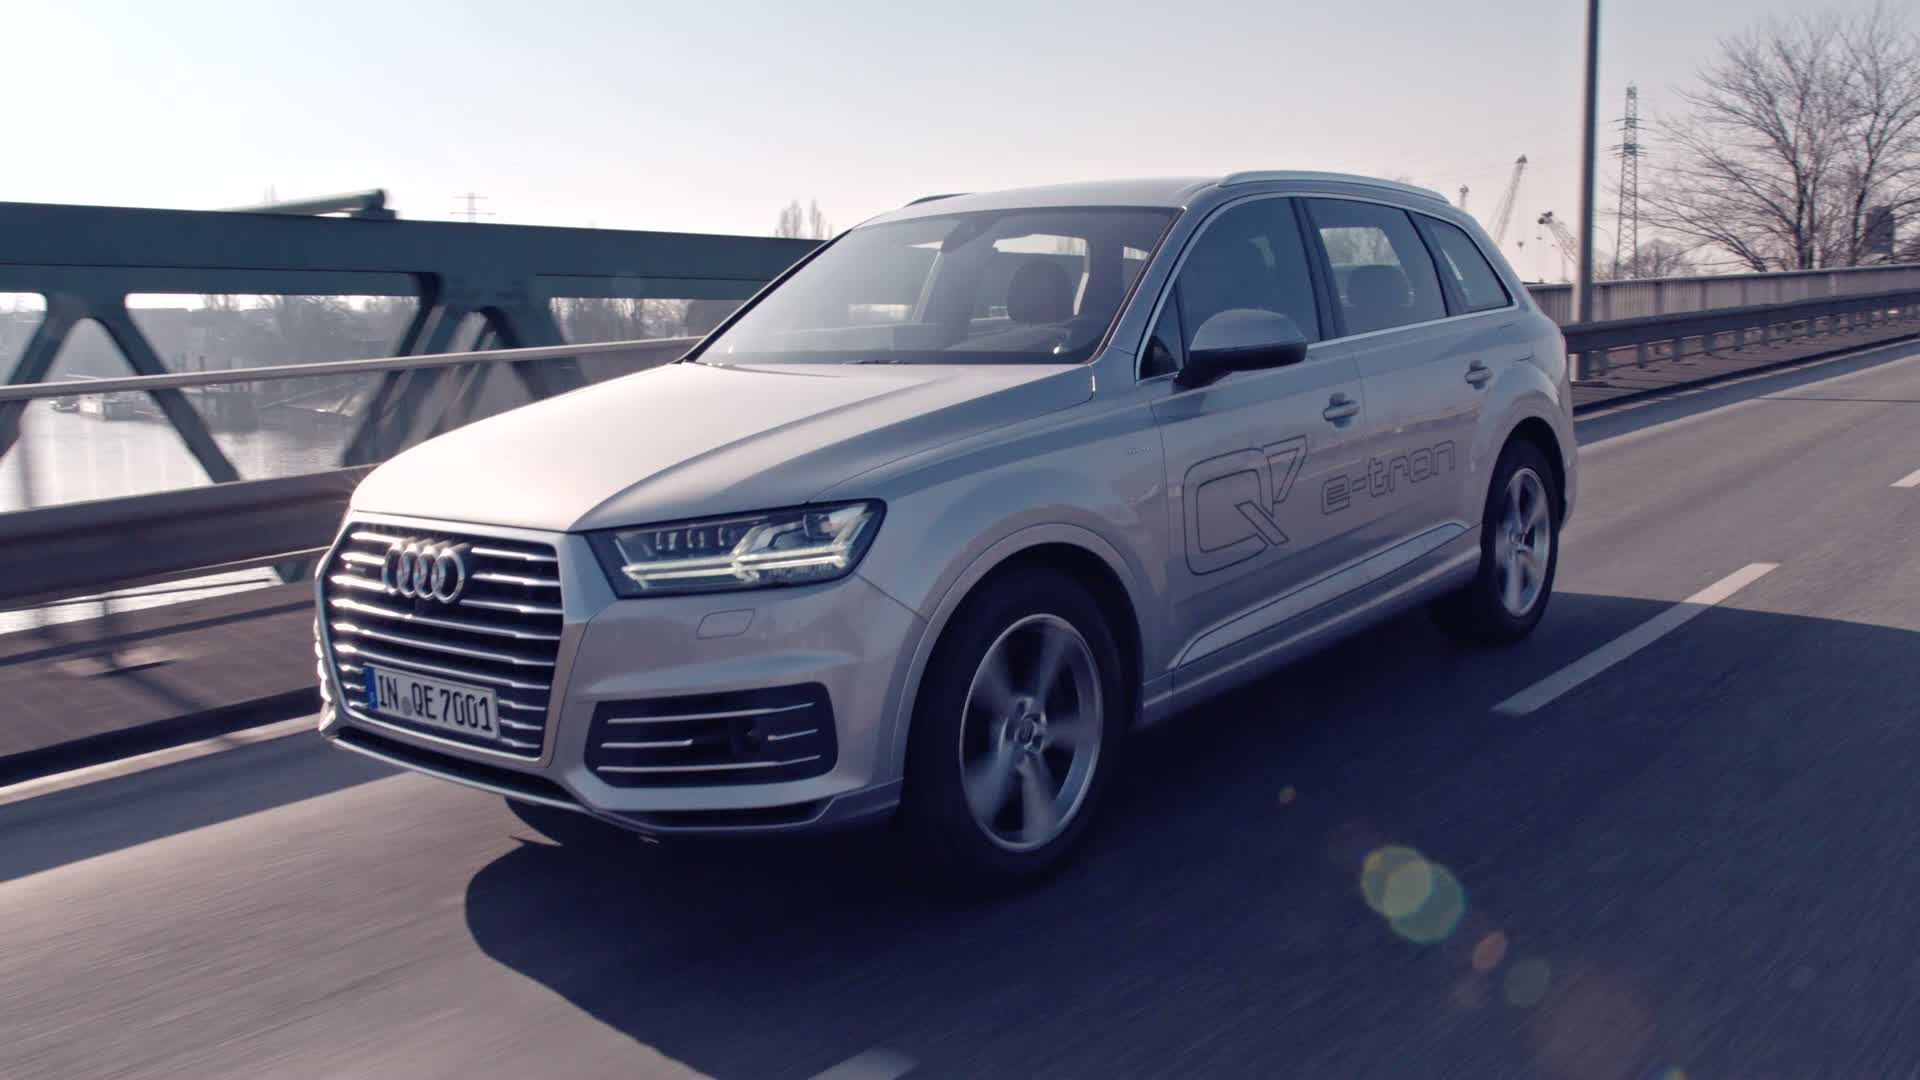 The Audi Q7 e-tron quattro - Trailer